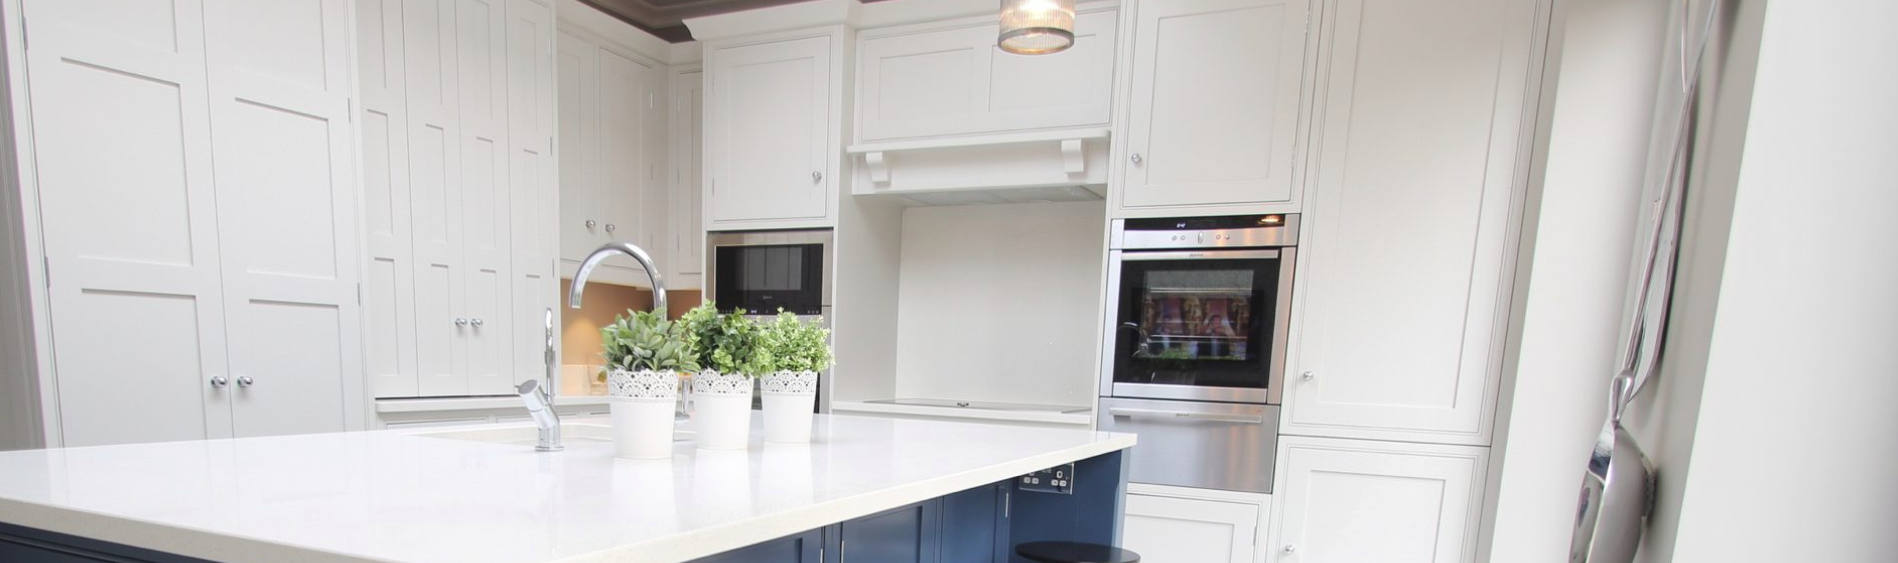 Kitchen Company in Horsham | The Brighton Kitchen Company